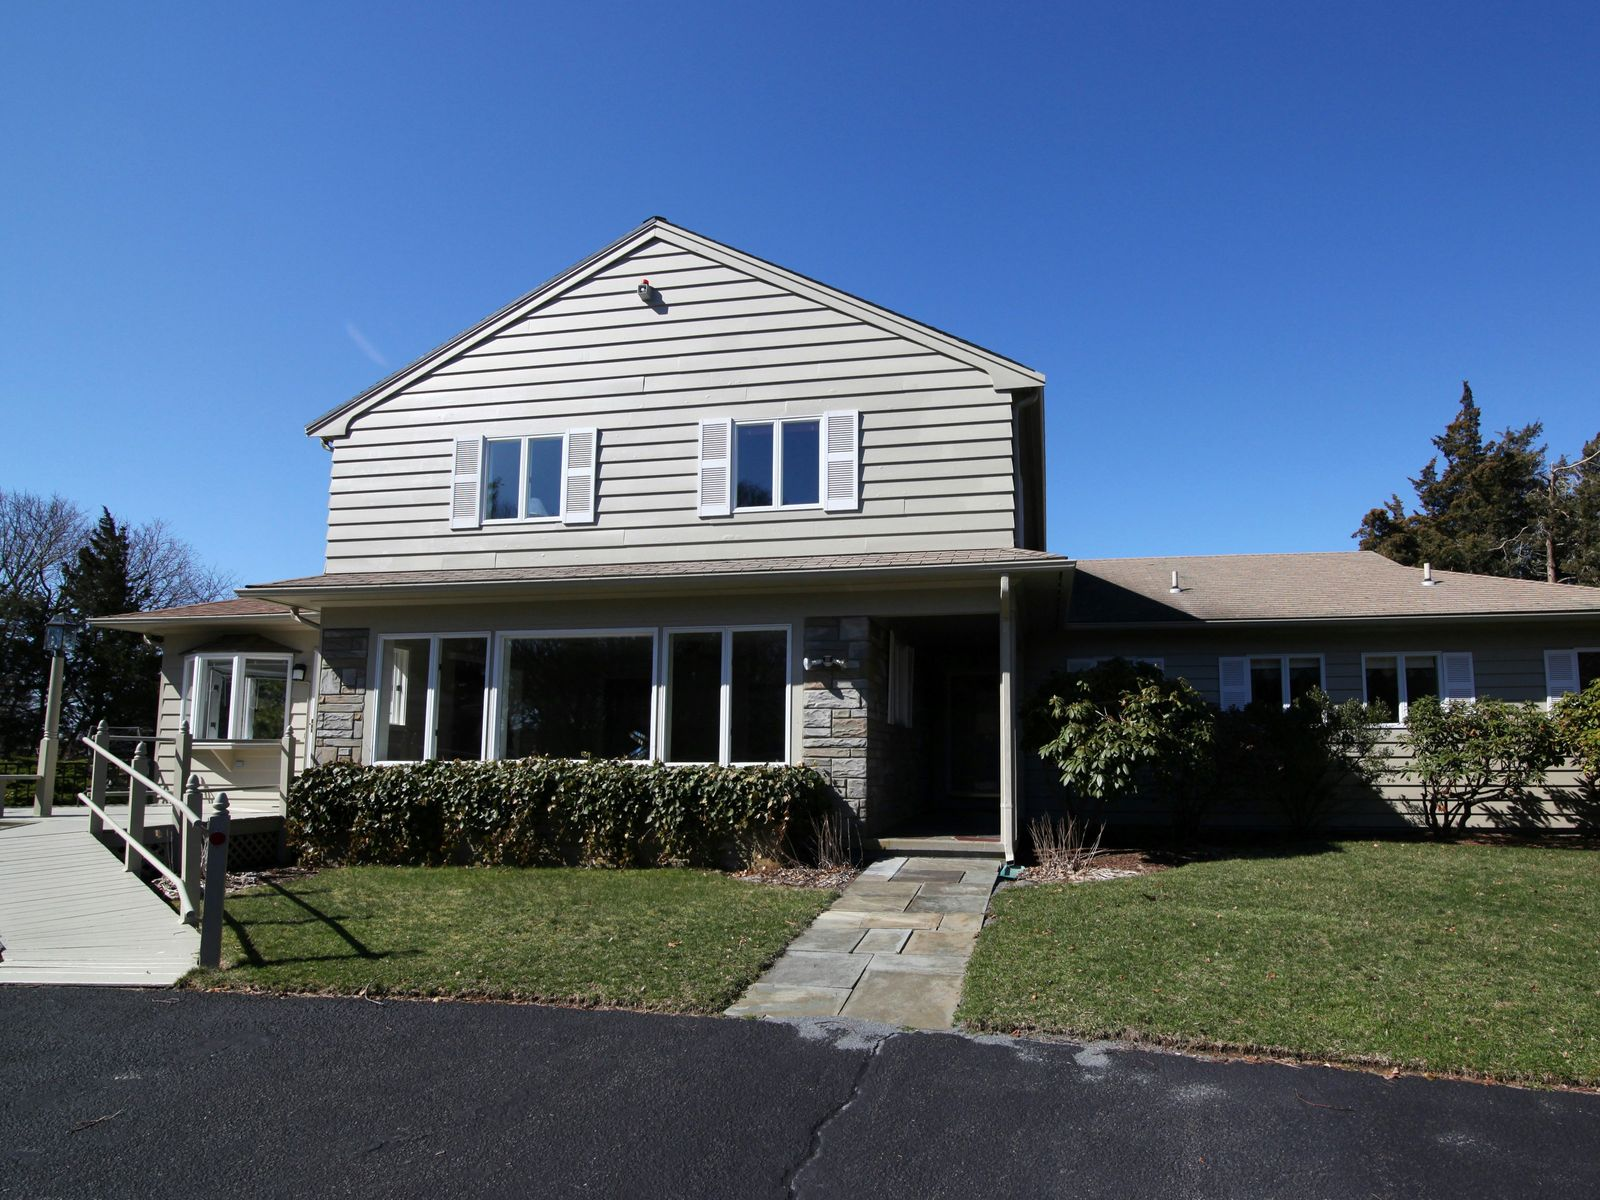 Cape Cod Compound Overlooking Harbor, Bourne MA Single Family Home - Cape Cod Real Estate